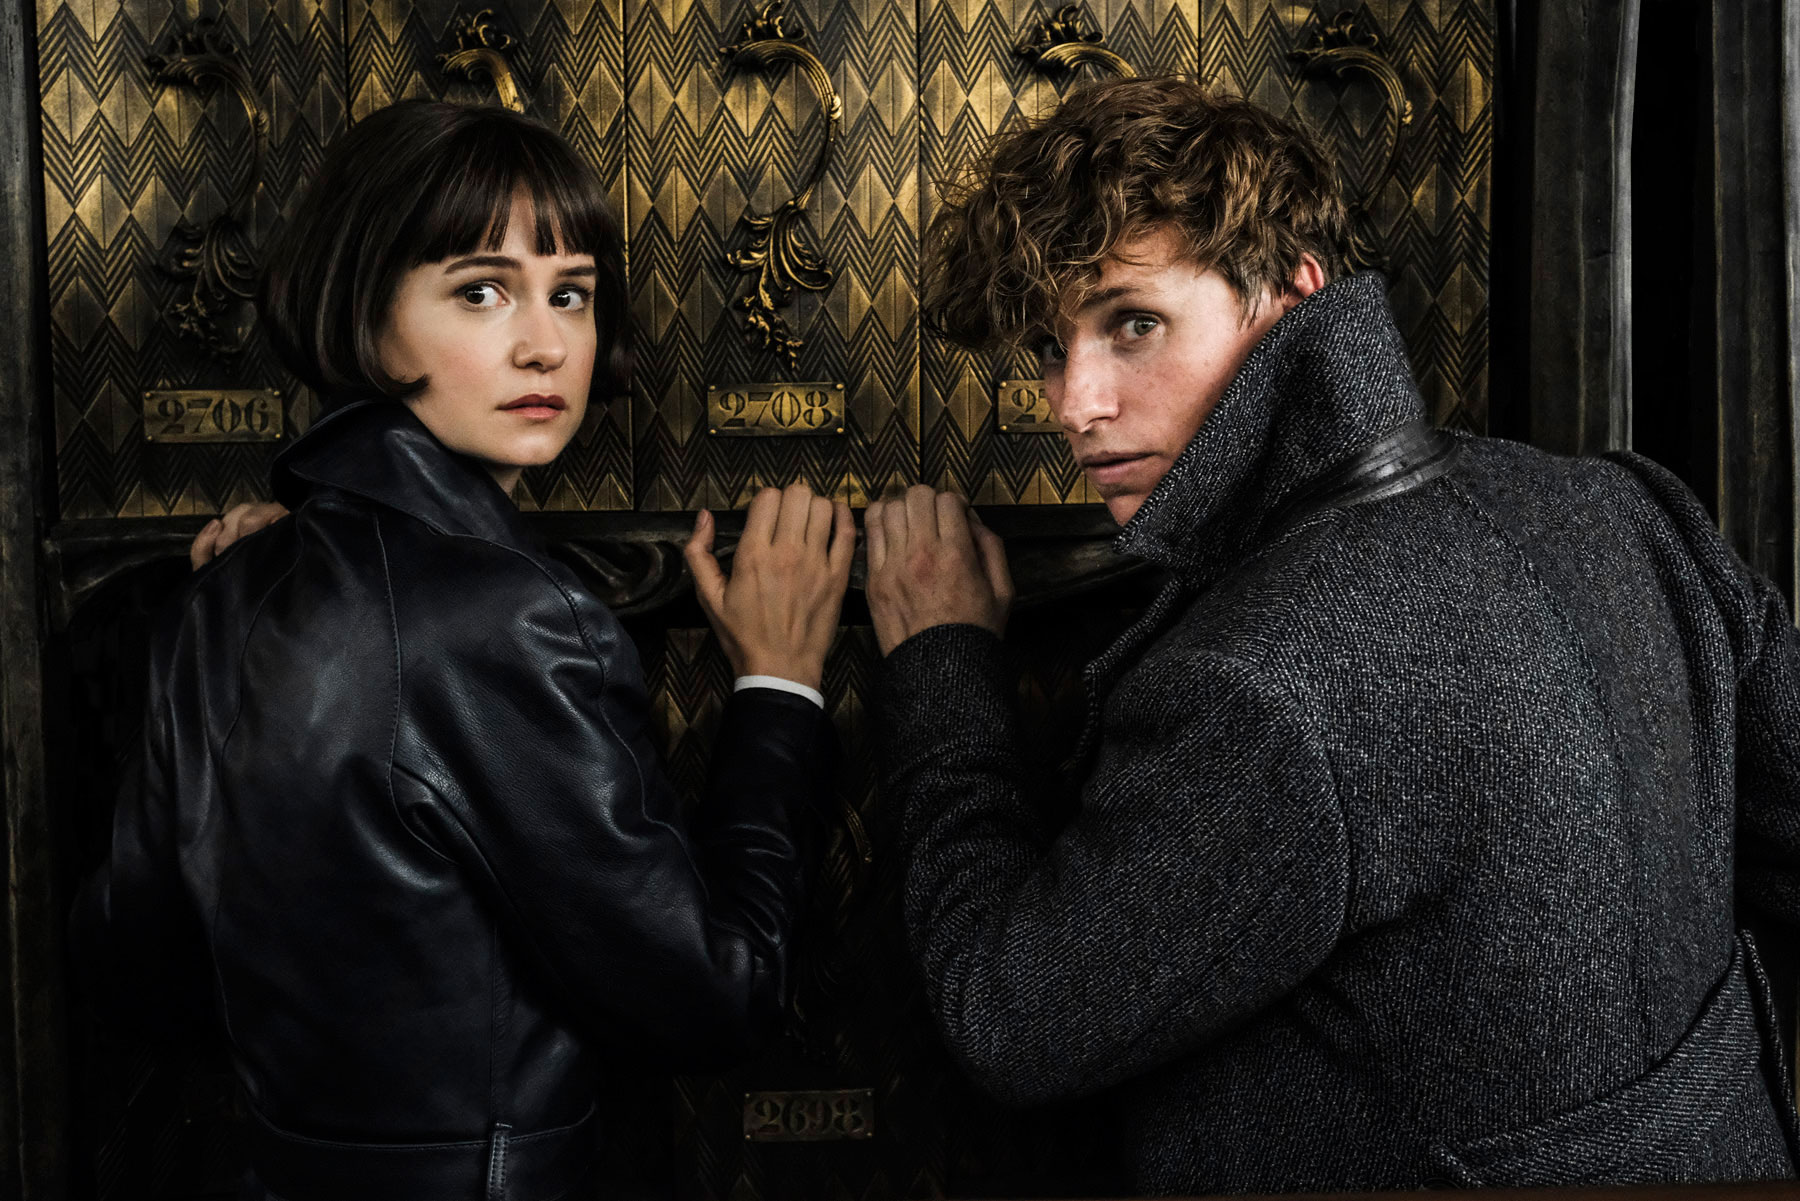 """Fantastic Beasts: The Crimes of Grindelwald"": Tina Goldstein (Katherine Waterston) and Newt Scamander (Eddie Redmayne)"